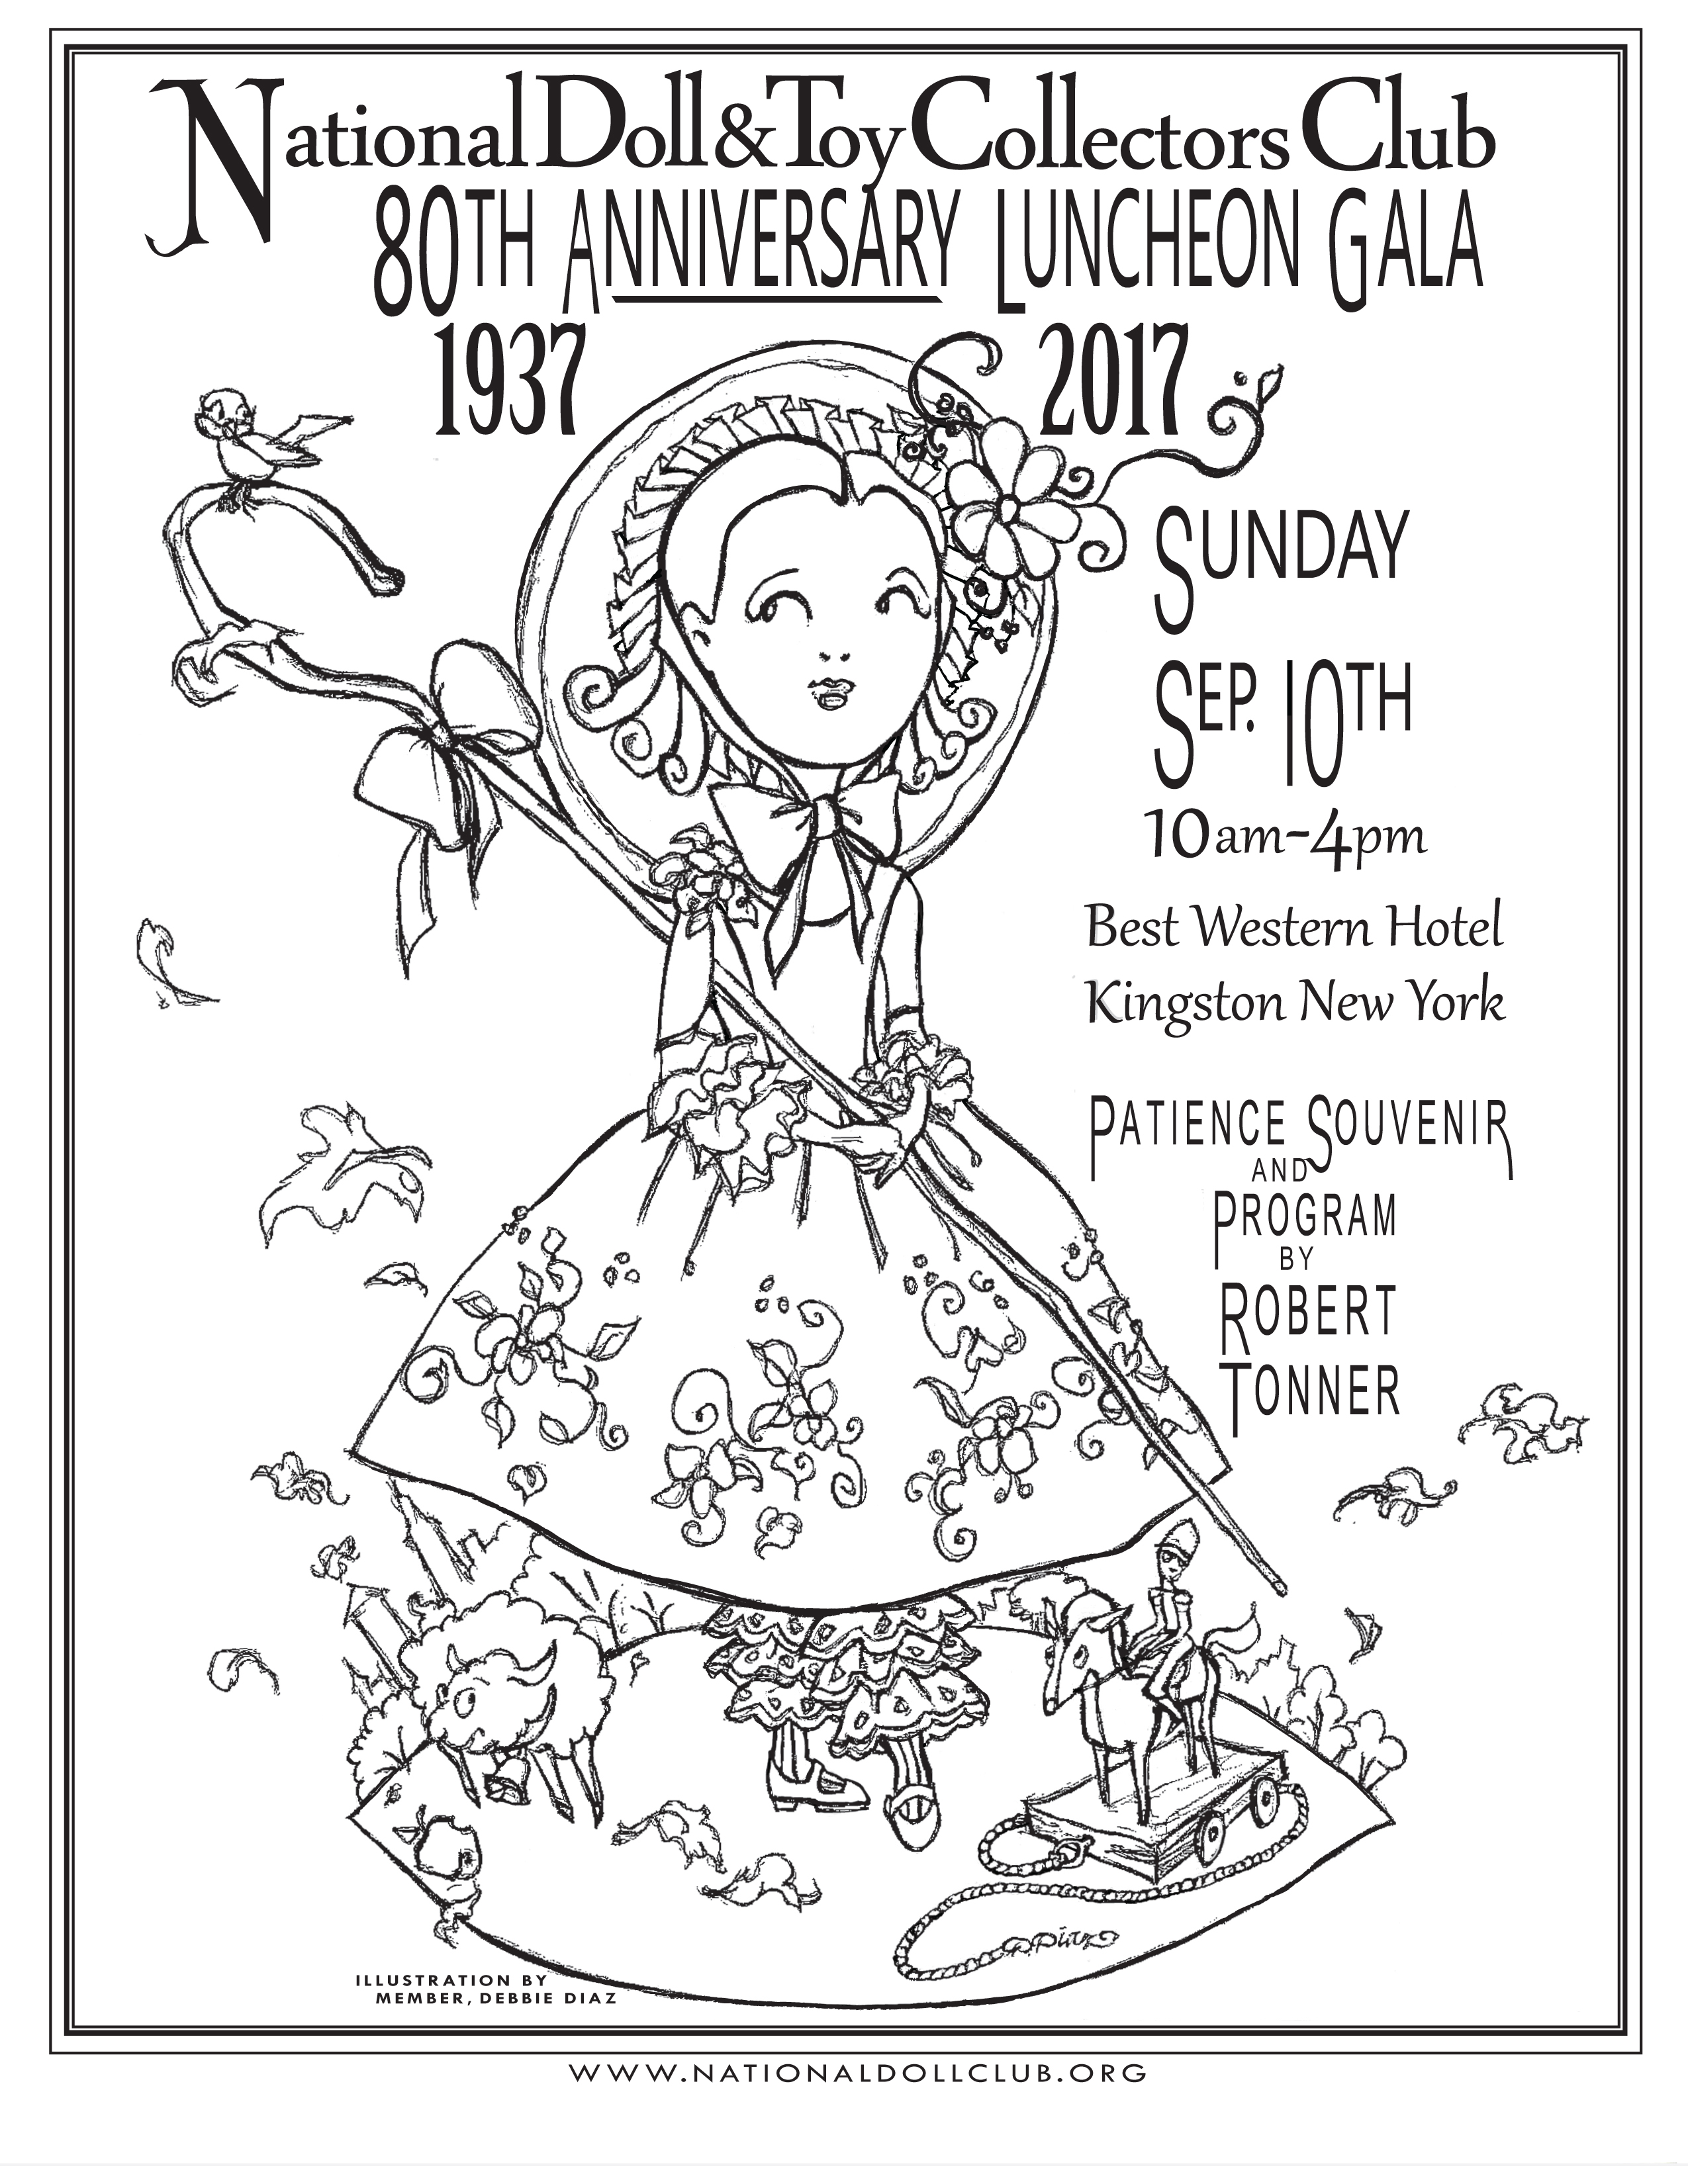 National Doll & Toy Collectors Club of NYC celebrates 80 years from 1937 to 2017 on Sunday, Sep. 10th at the Best Western in Kingston NY, Patience Souvenir LE 80 and Program by Robert Tonner. Seating Limited to 100. Illustration by Debbie Diaz.